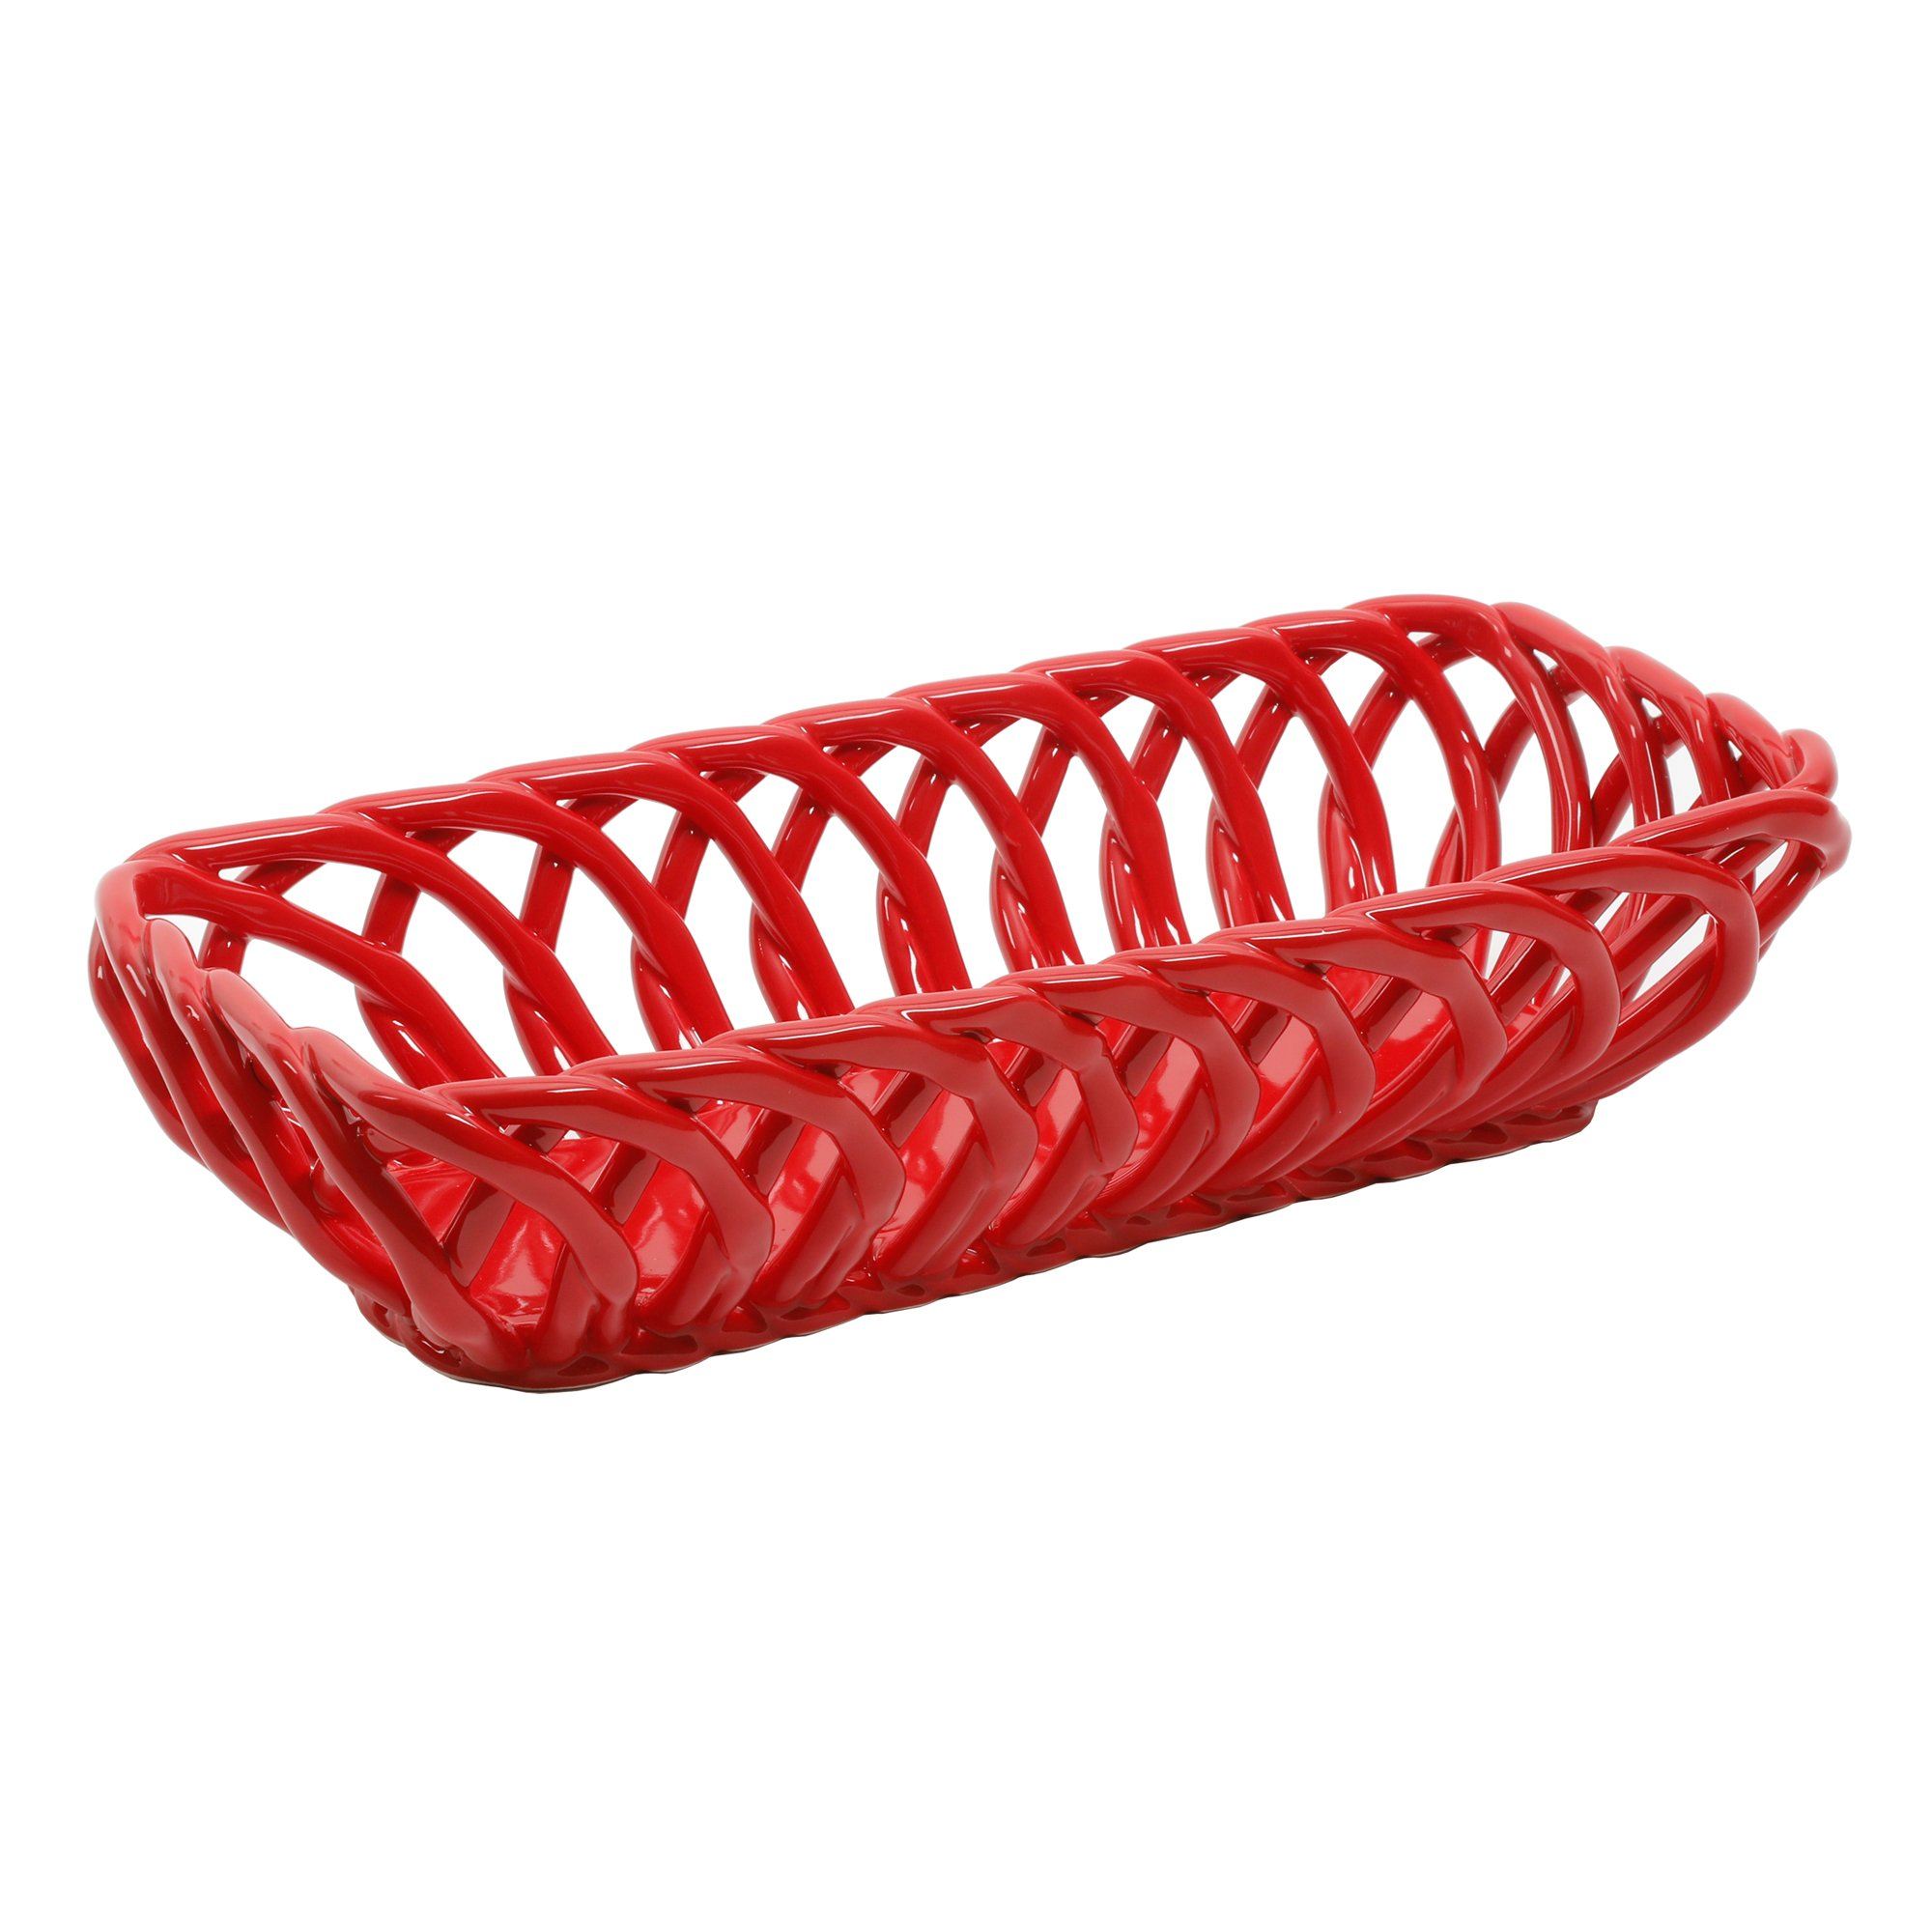 Timeless Beauty 13.7-Inch RED Bread Basket Perfect For Use From Oven To Table, Dishwasher And Microwave Safe, Made Of Stoneware By The Pioneer Woman